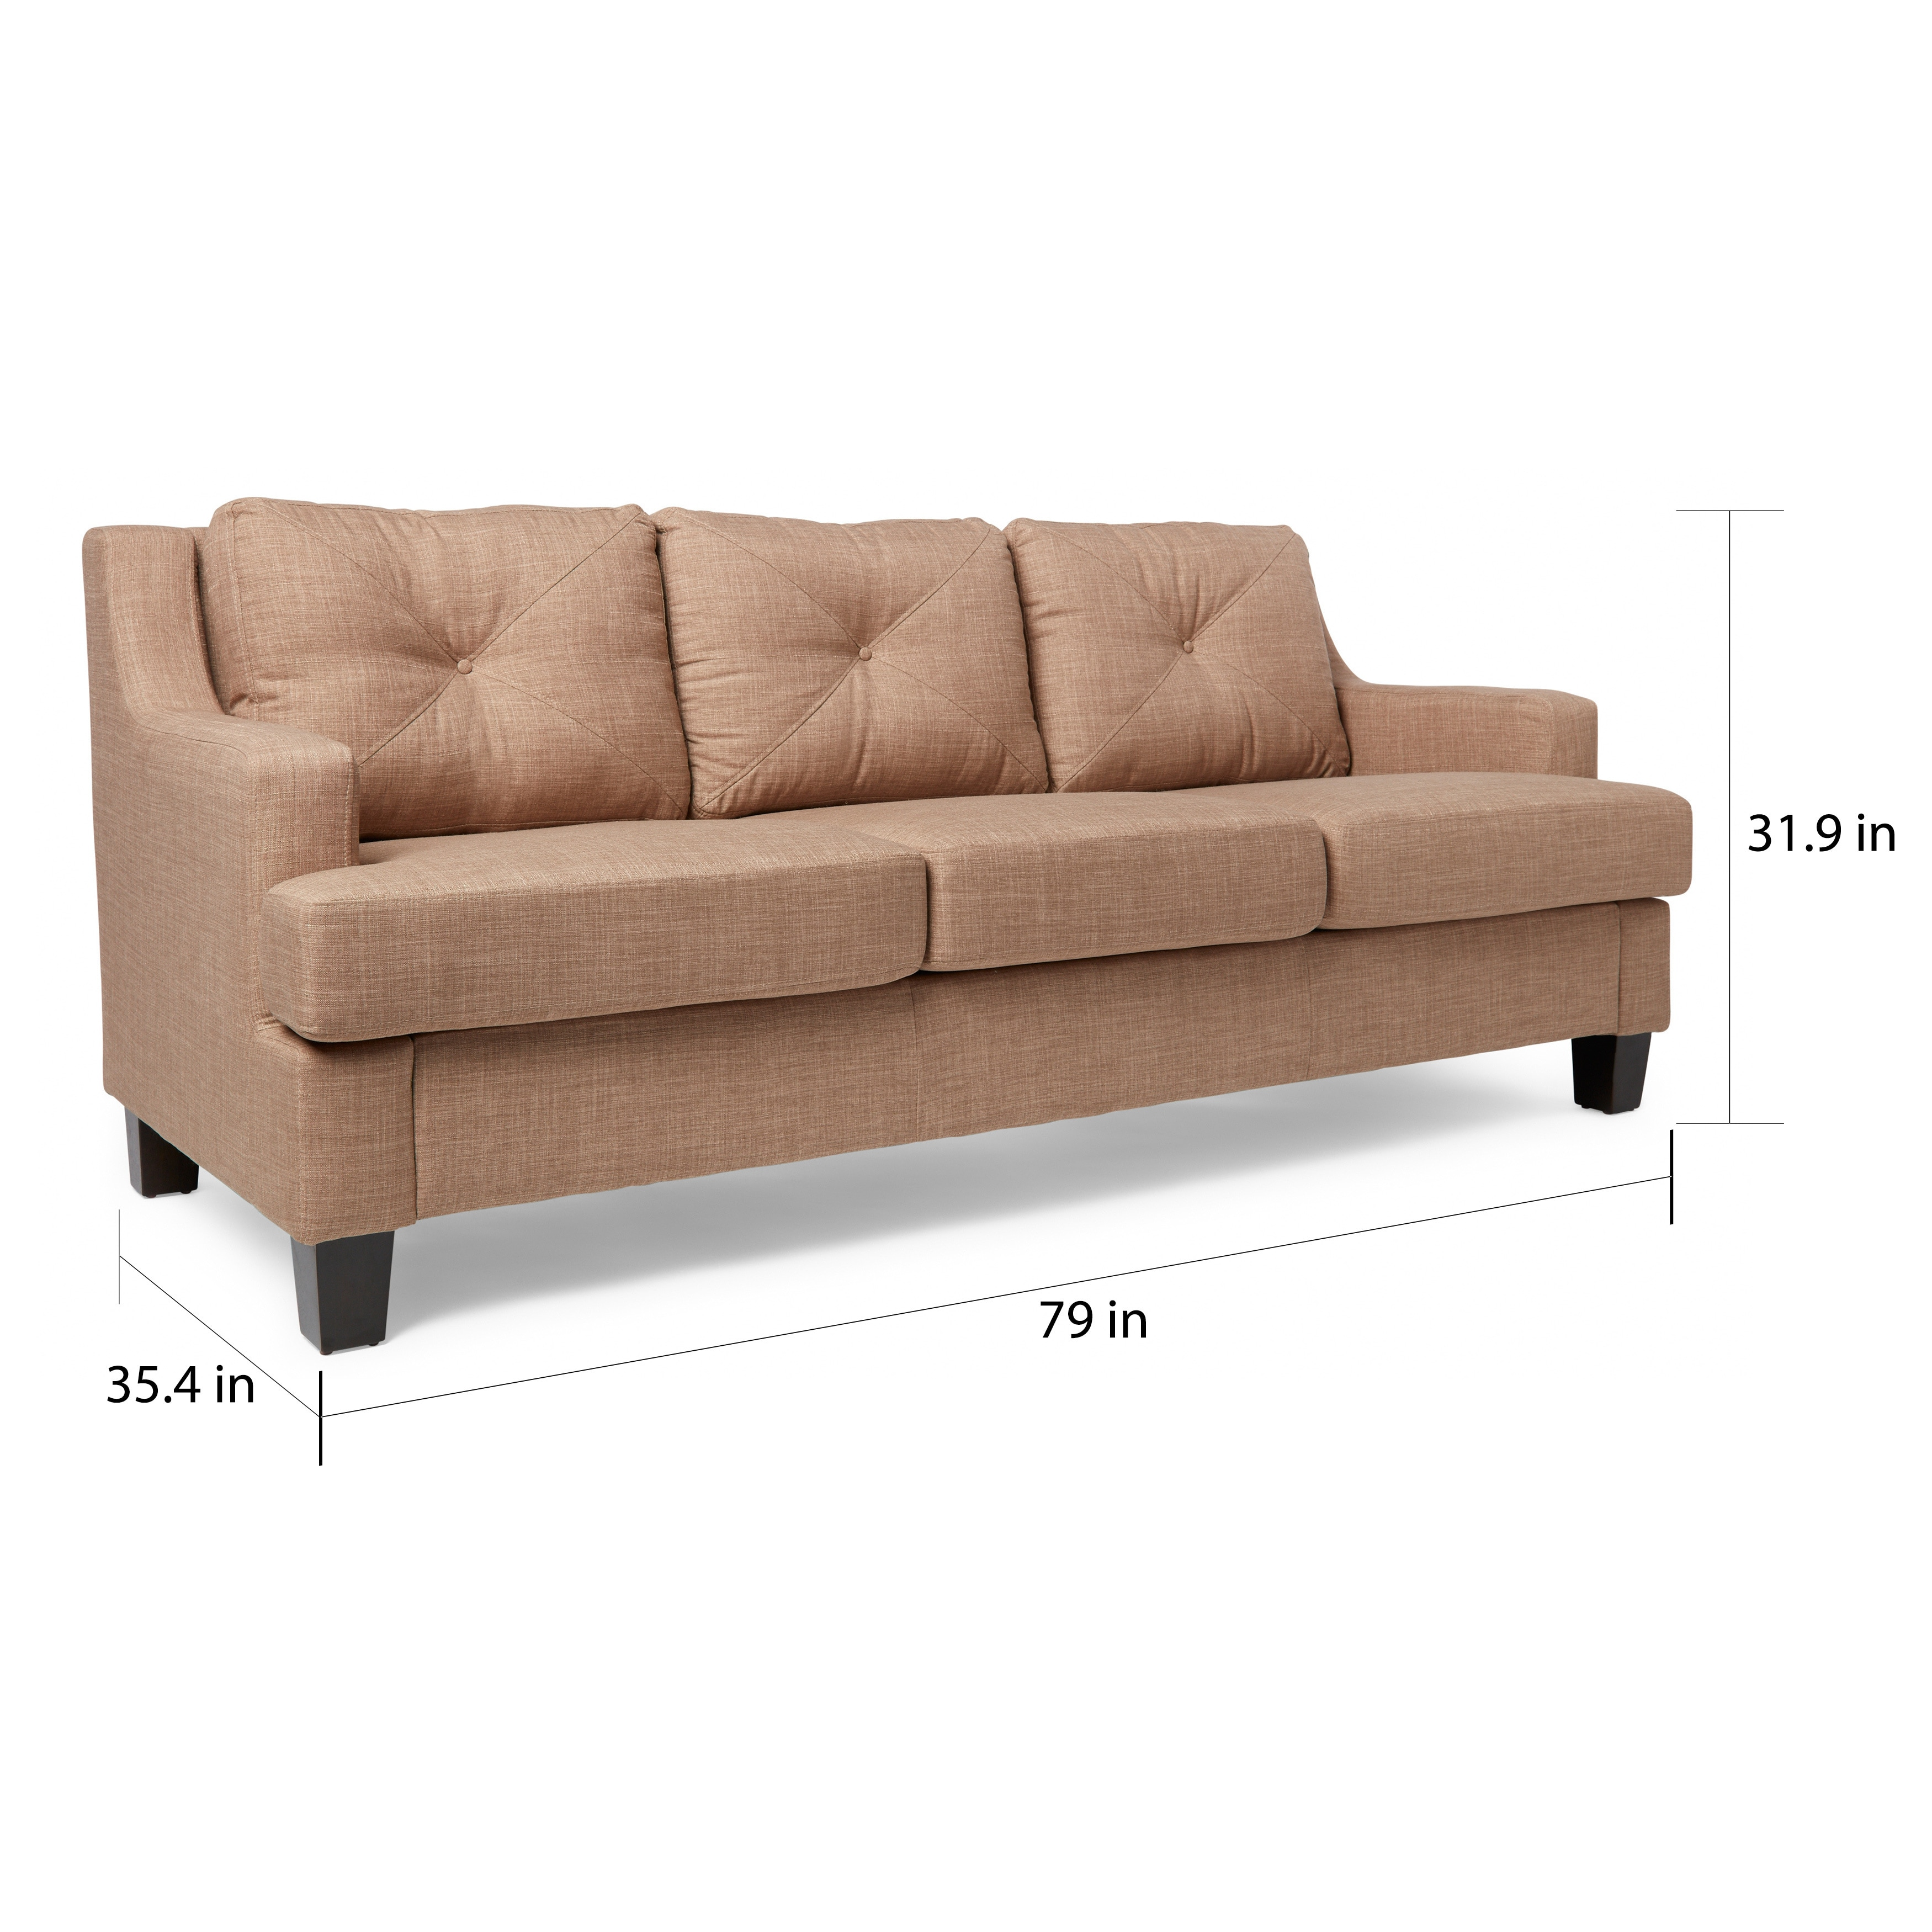 Shop Elston Linen Tufted Sloped Track Sofa INSPIRE Q Modern   On Sale    Free Shipping Today   Overstock.com   8859663